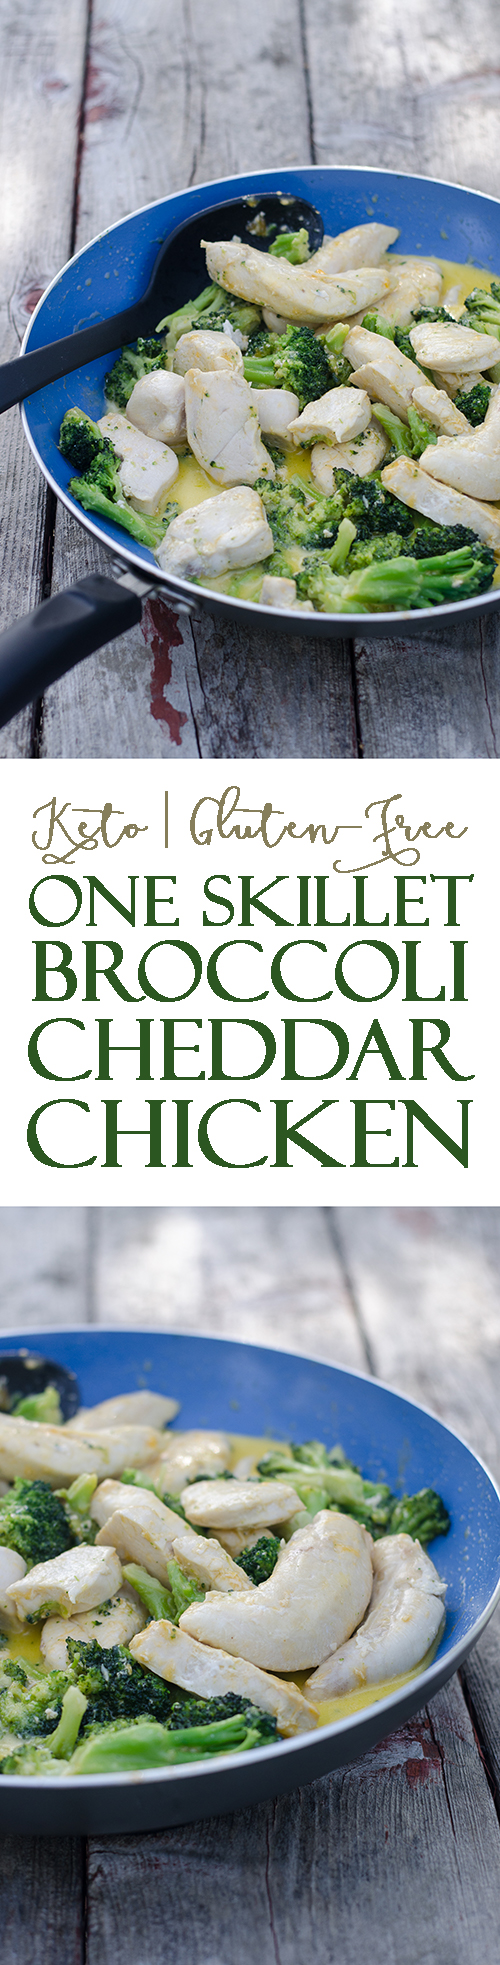 A simple 15 minute meal, this one skillet broccoli cheddar chicken is perfect for busy nights when your mind is elsewhere. All you need is one pot and five simple ingredients! Gluten-free, grain-free, low-carb and ketogenic.